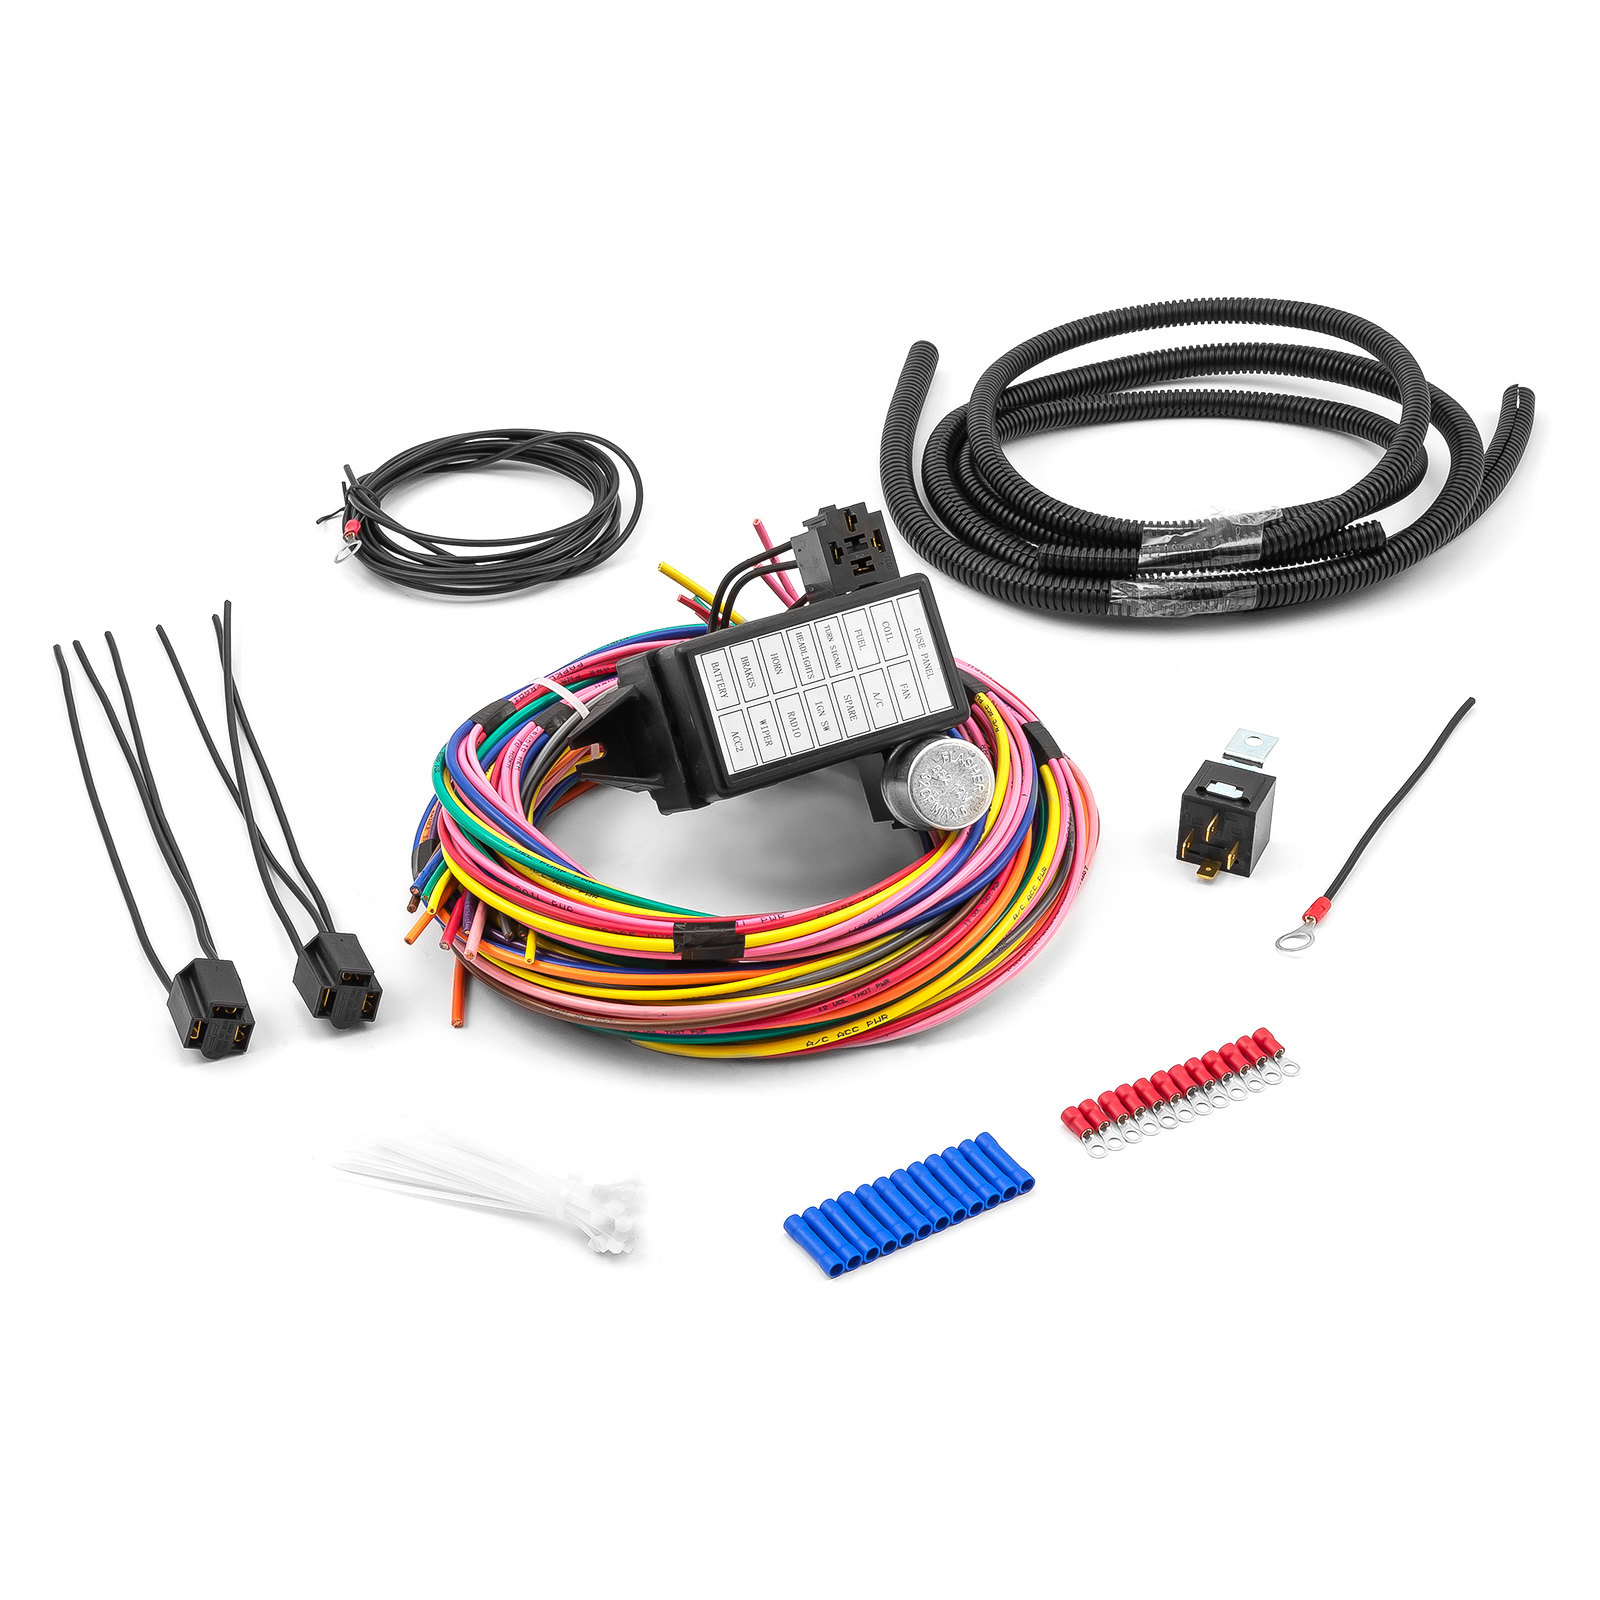 Universal 14 Circuit Wiring Harness Kit Street Rod Hot Rod Race Car